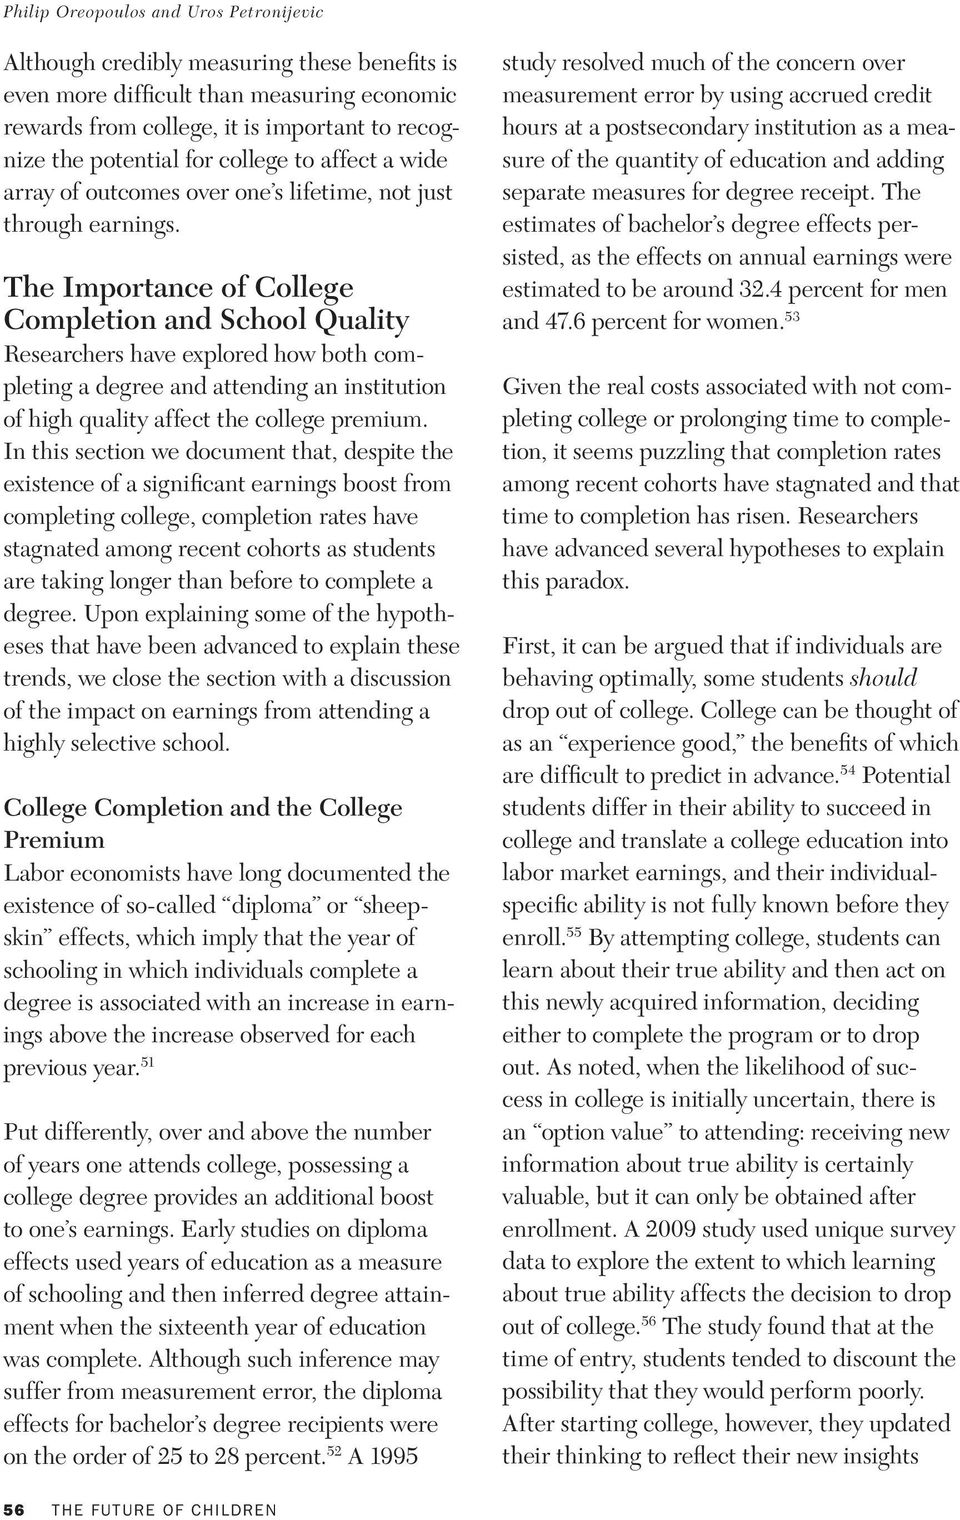 The Importance of College Completion and School Quality Researchers have explored how both completing a degree and attending an institution of high quality affect the college premium.